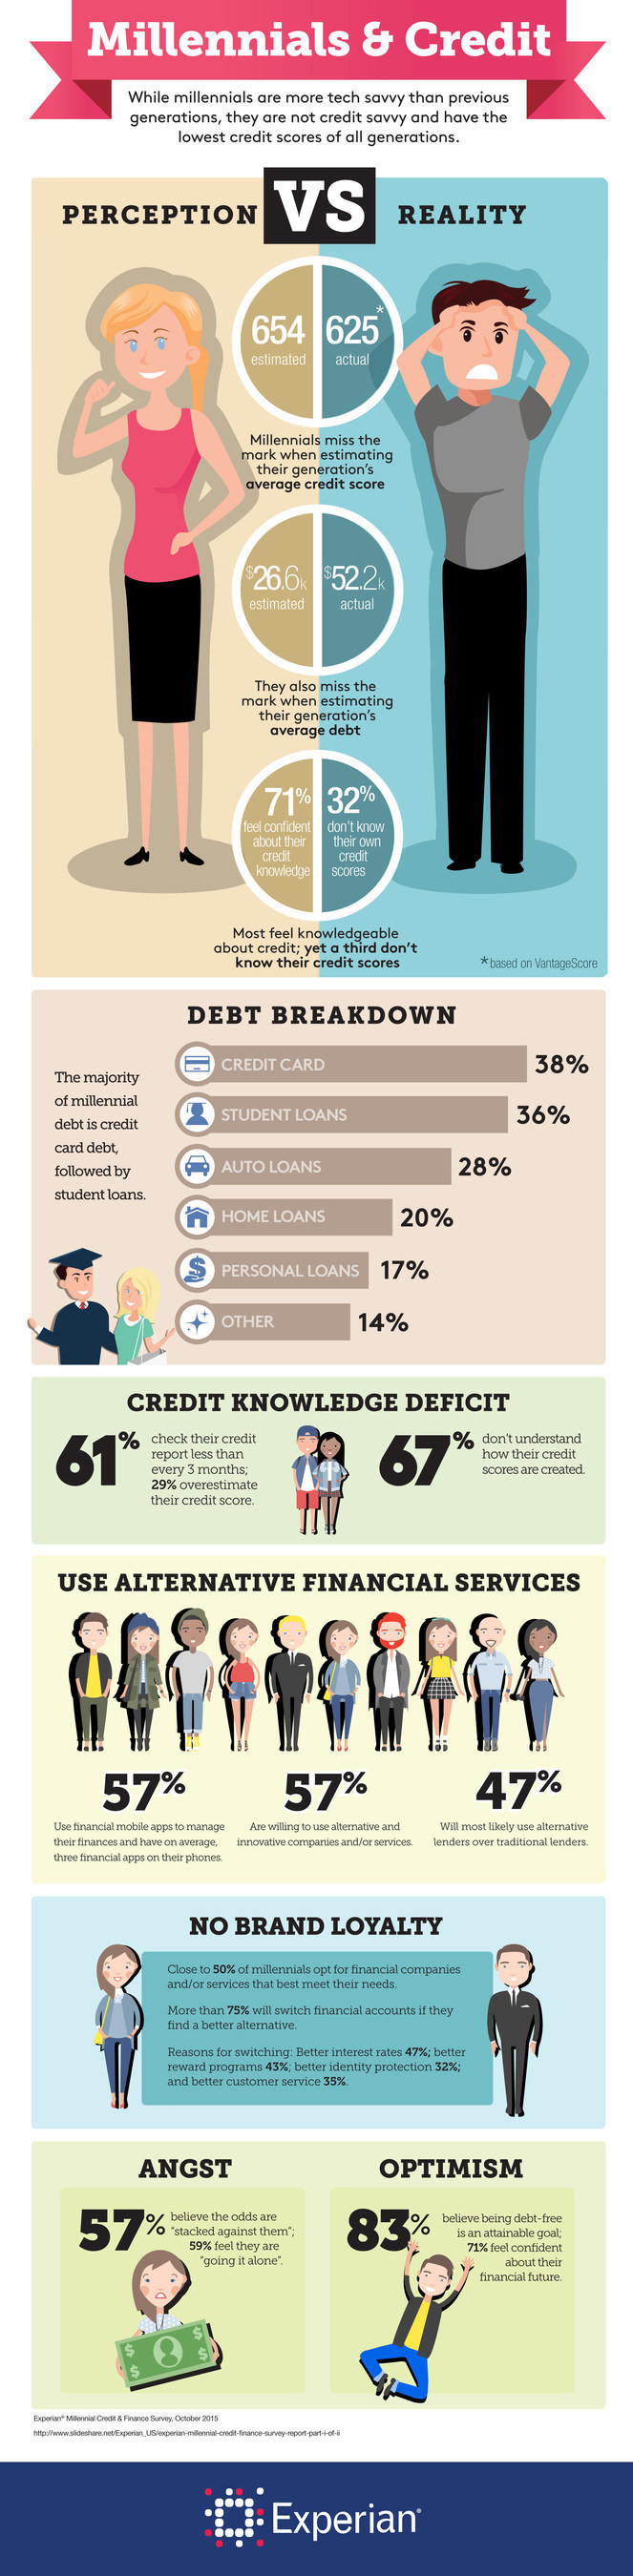 Experian announced today the first of two reports originating from a survey of more than 1,000 millennials, ...